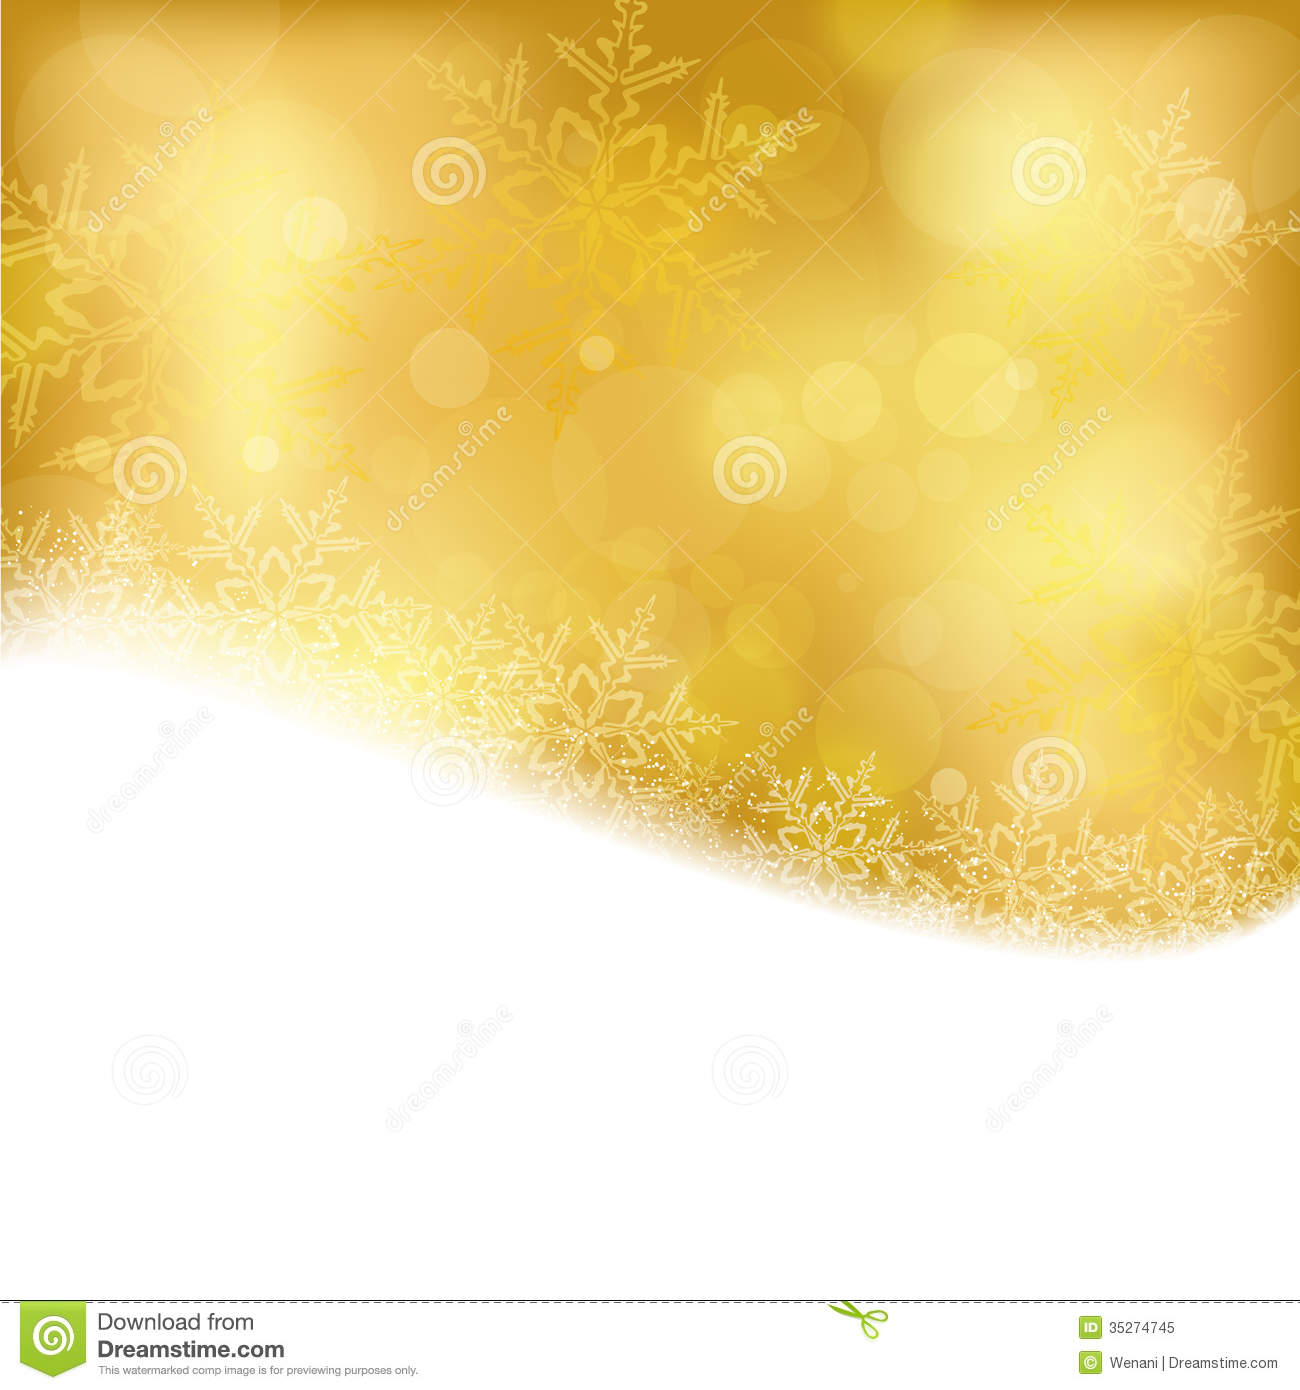 50 Shades Of Fabulous Svg: Golden Christmas Background With Blurry Lights Stock